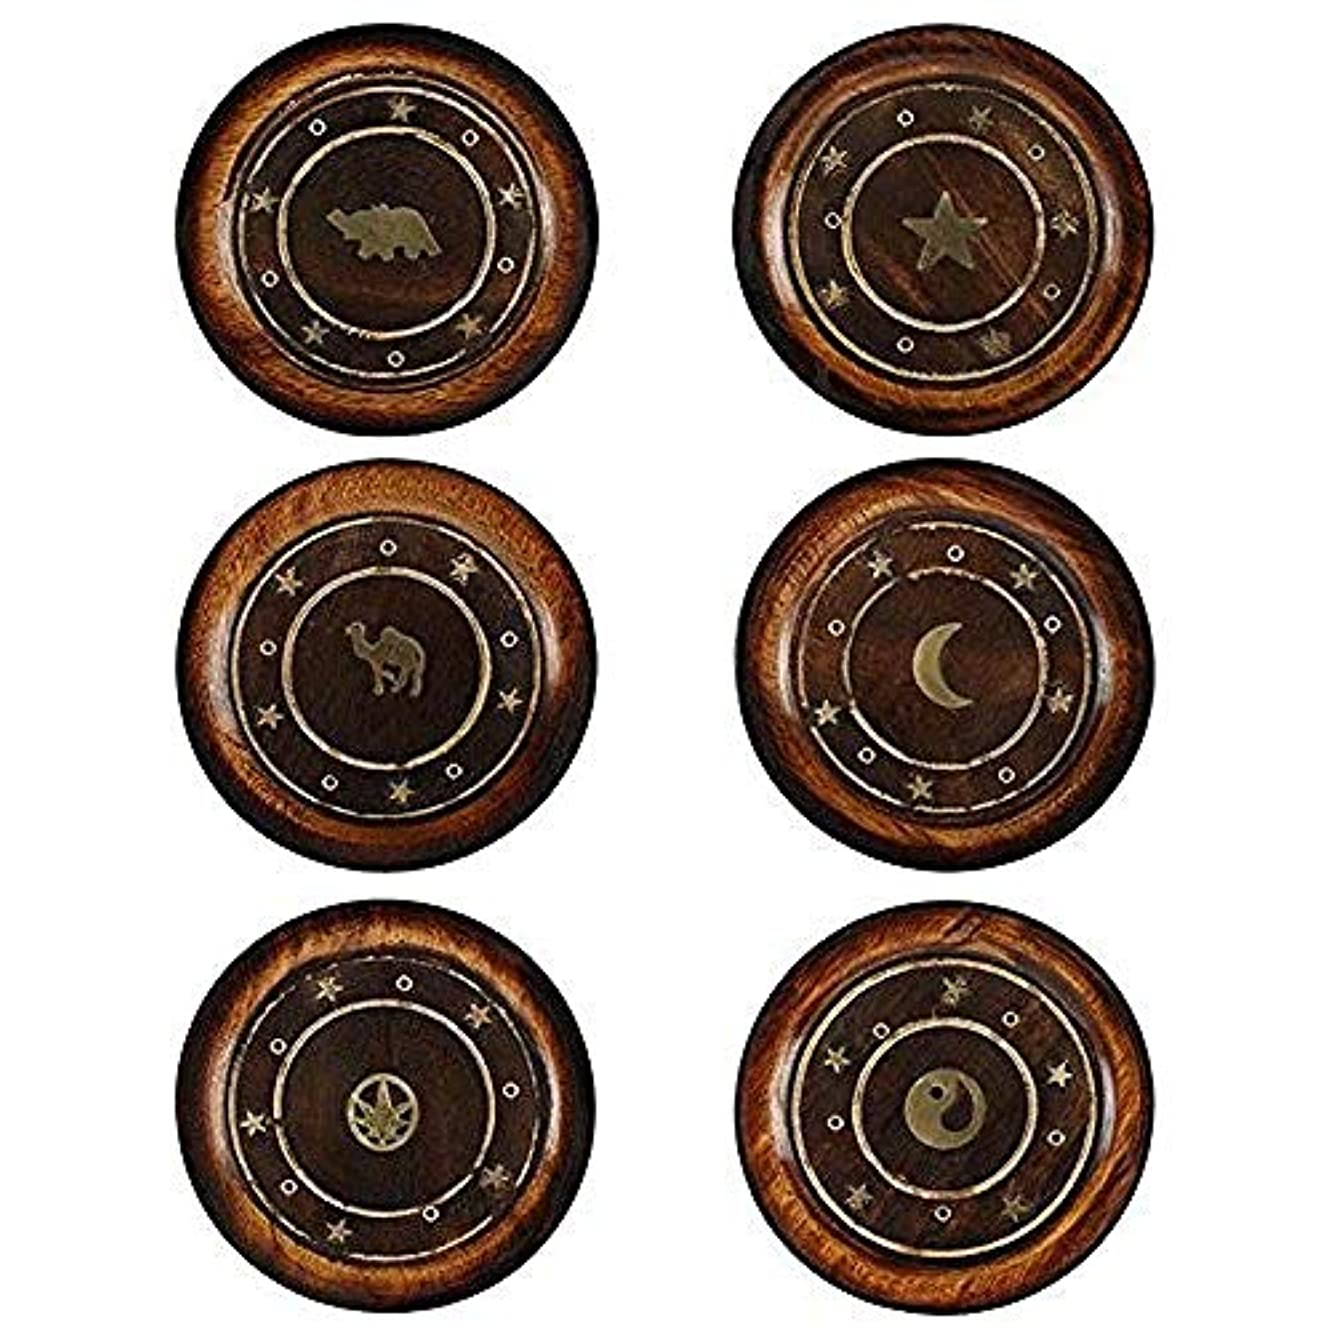 意見締めるヒューマニスティックMangowood Round Plate Incense Holder with Brass Inlay